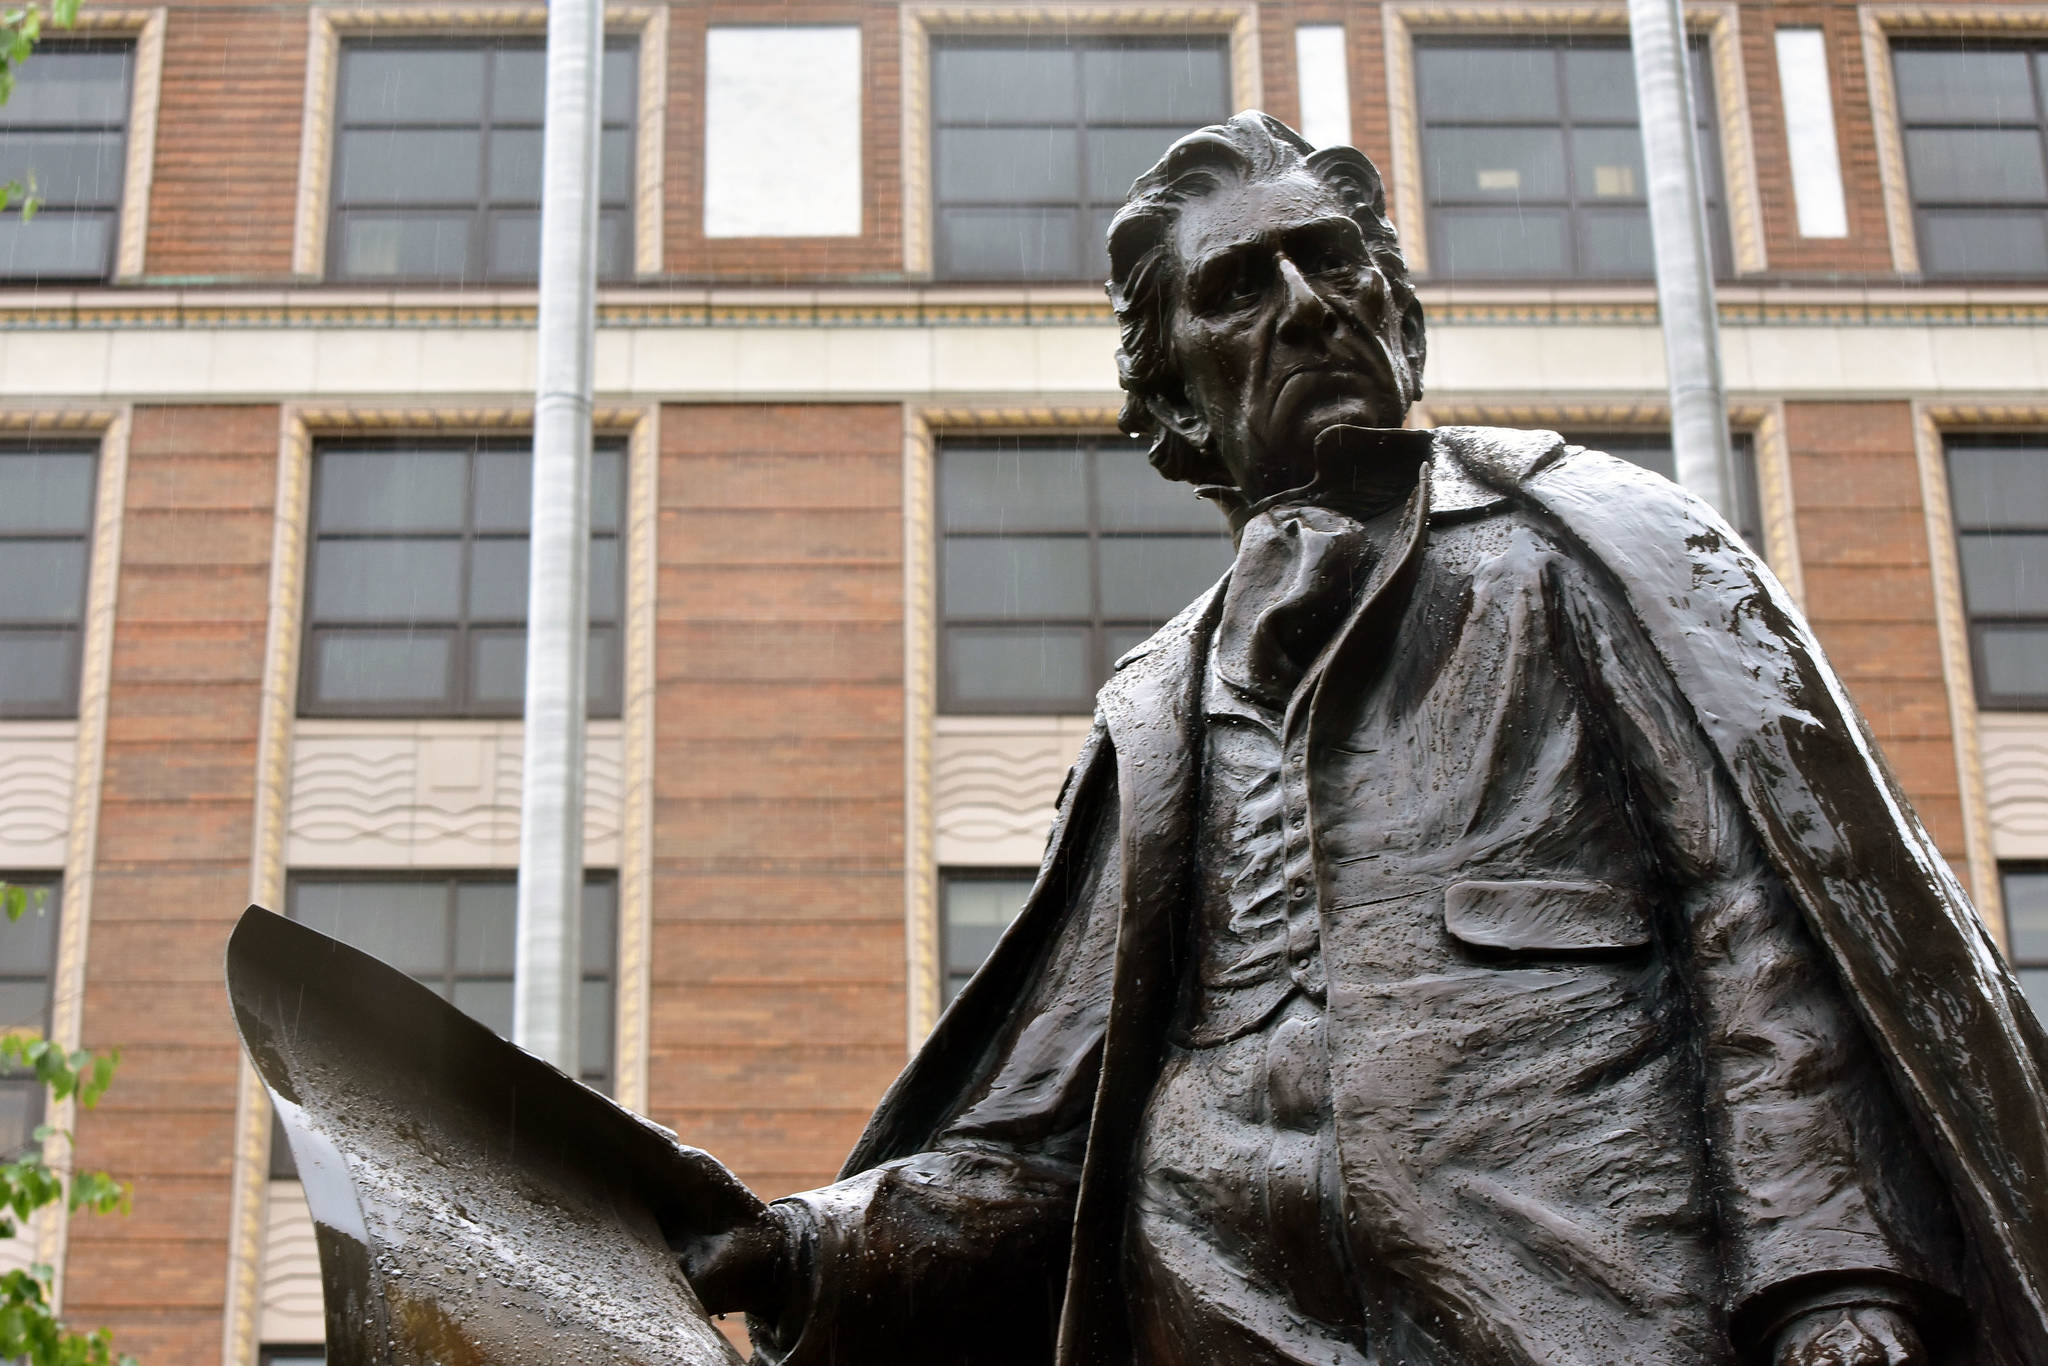 Polarizing Petition: Hundreds call for statue's removal